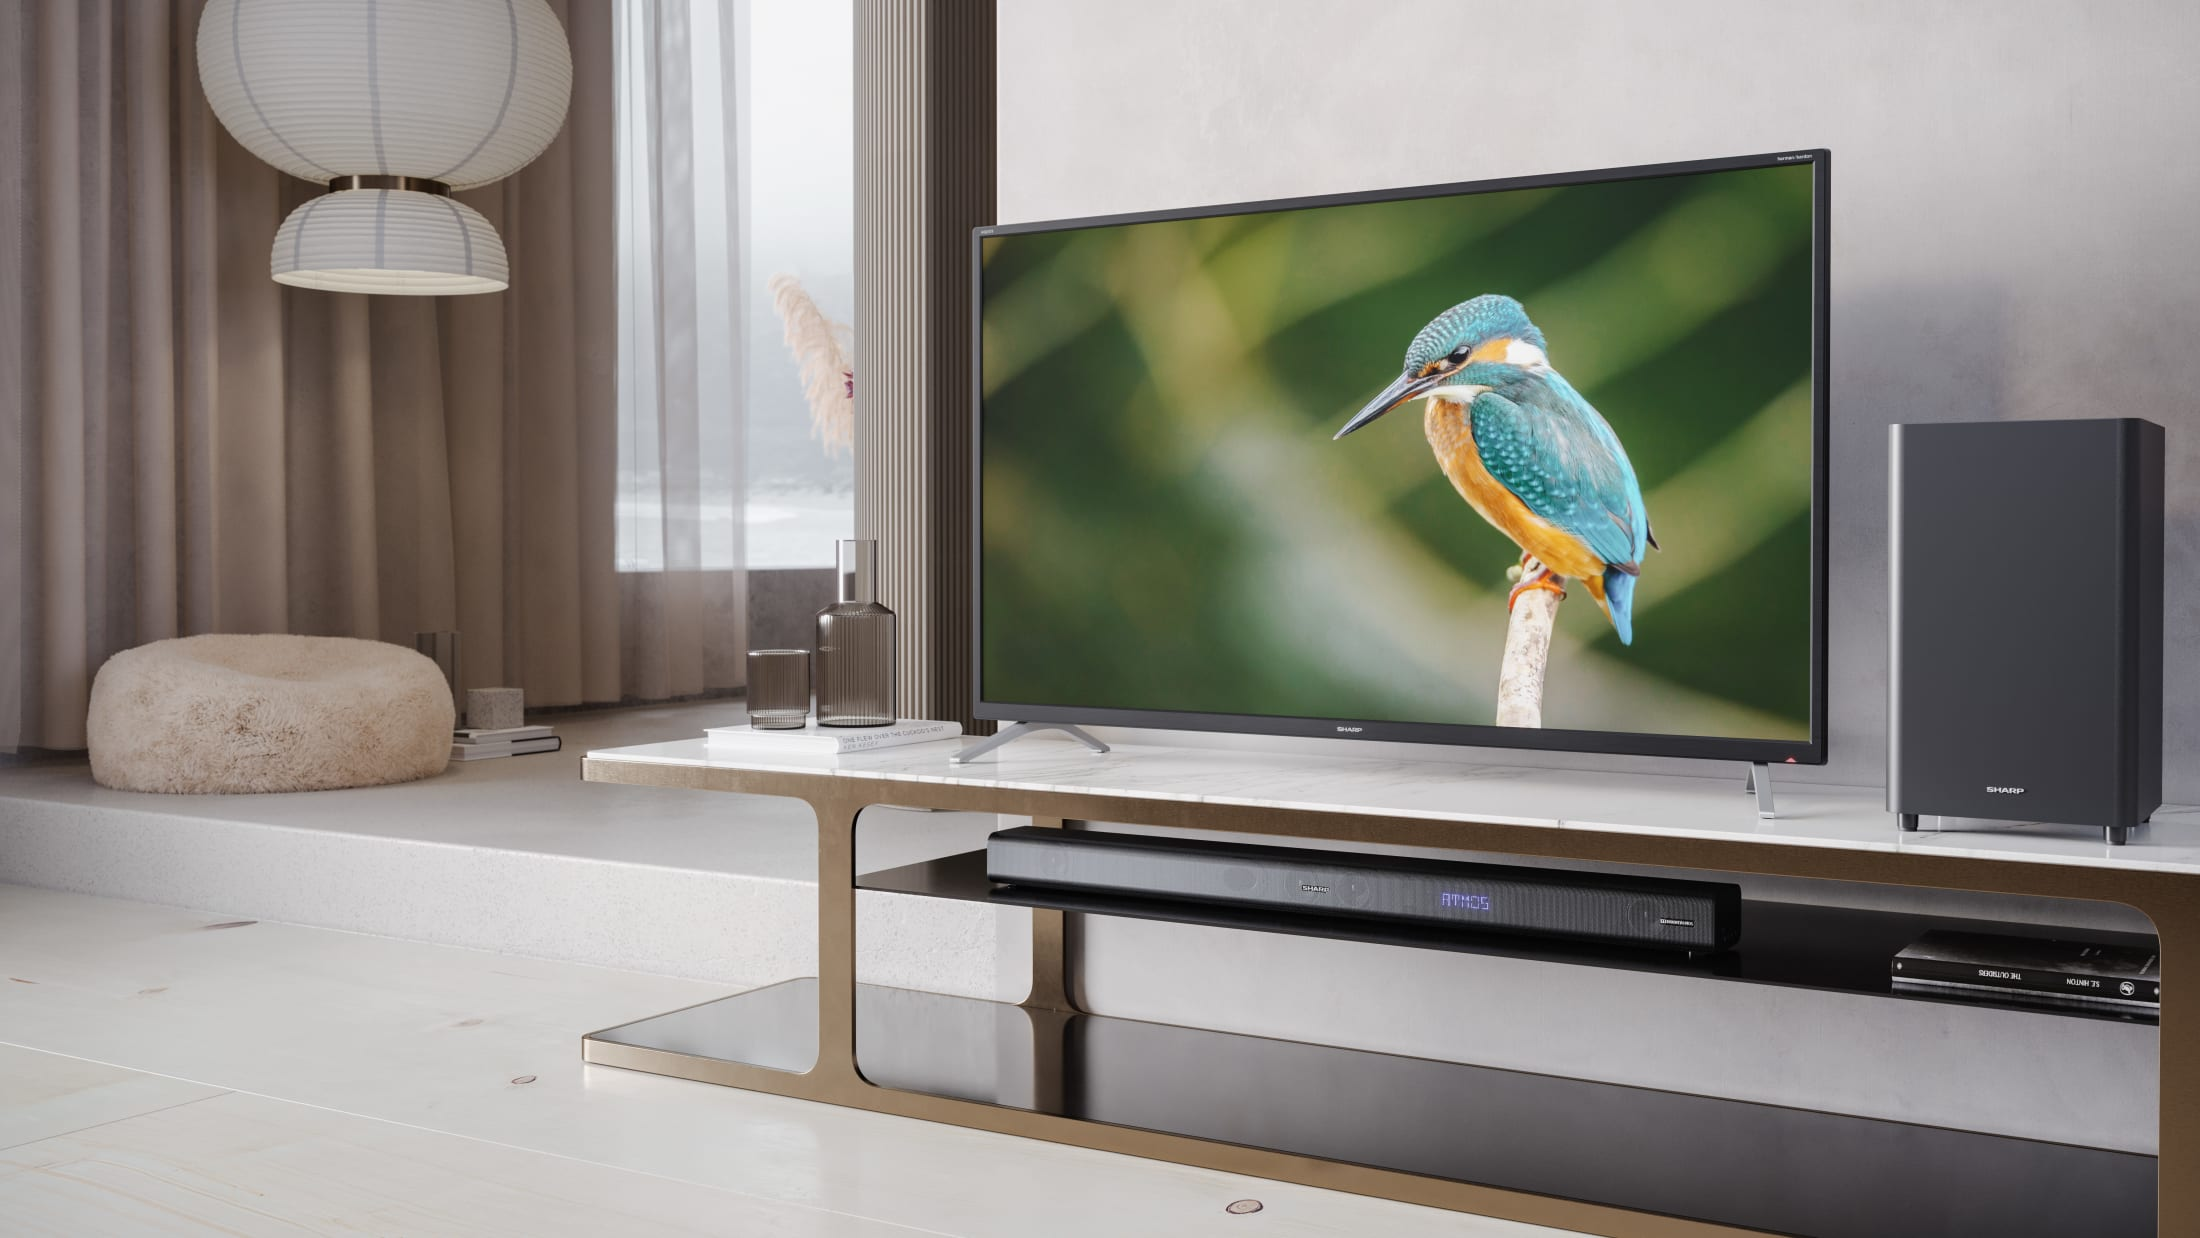 The 32BI2EA is a HD Ready LED Android TV™ with exceptional multimedia functionality.